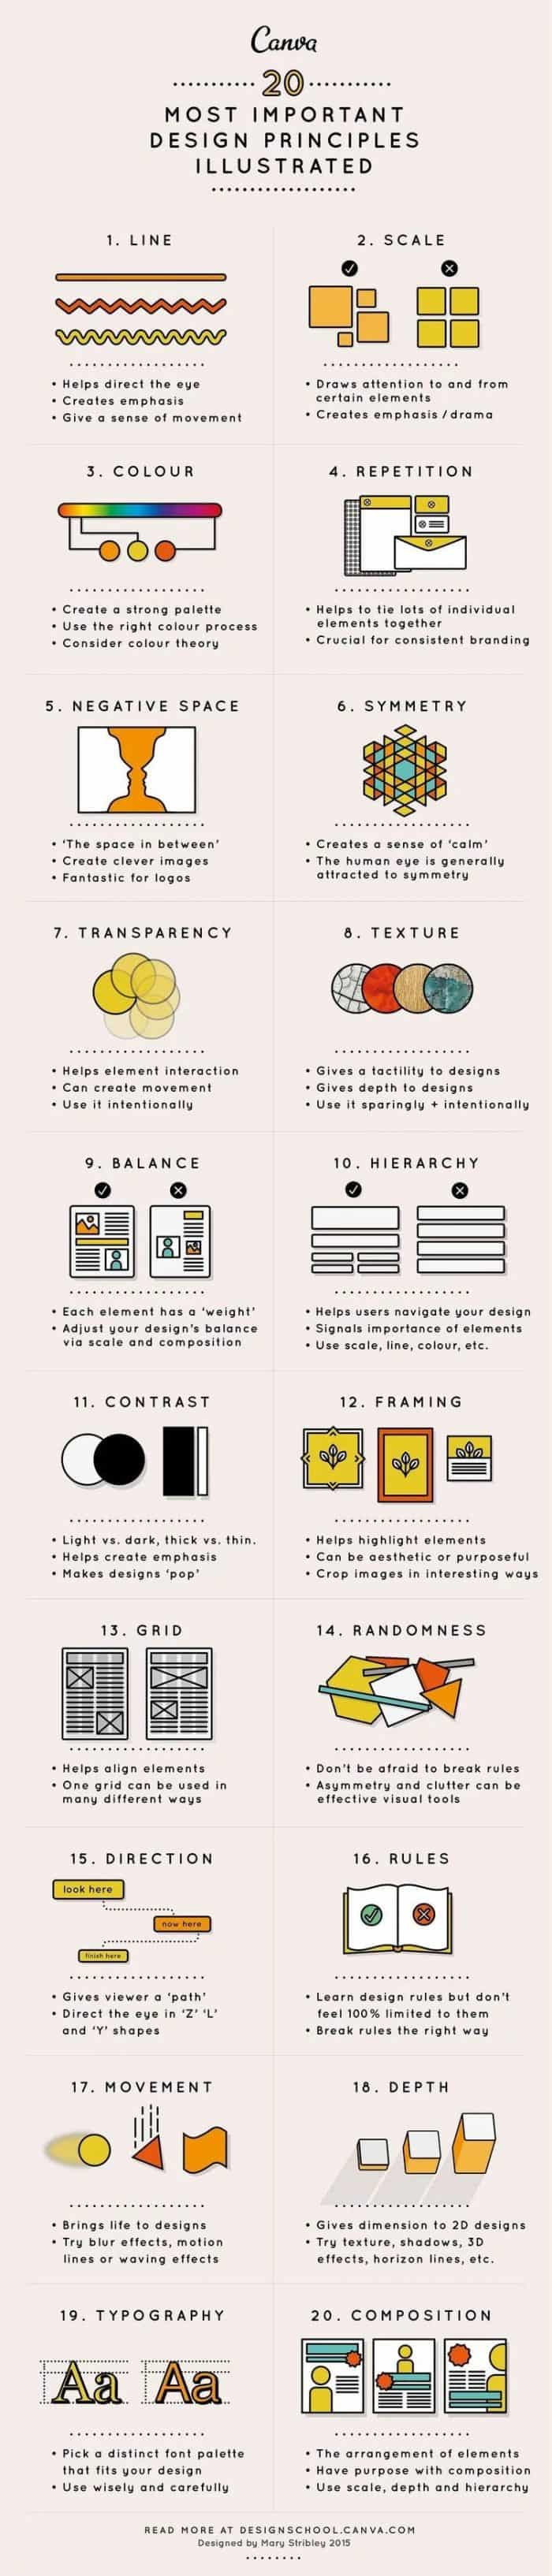 20DesignPrinciples_Infographic-tb-752x0